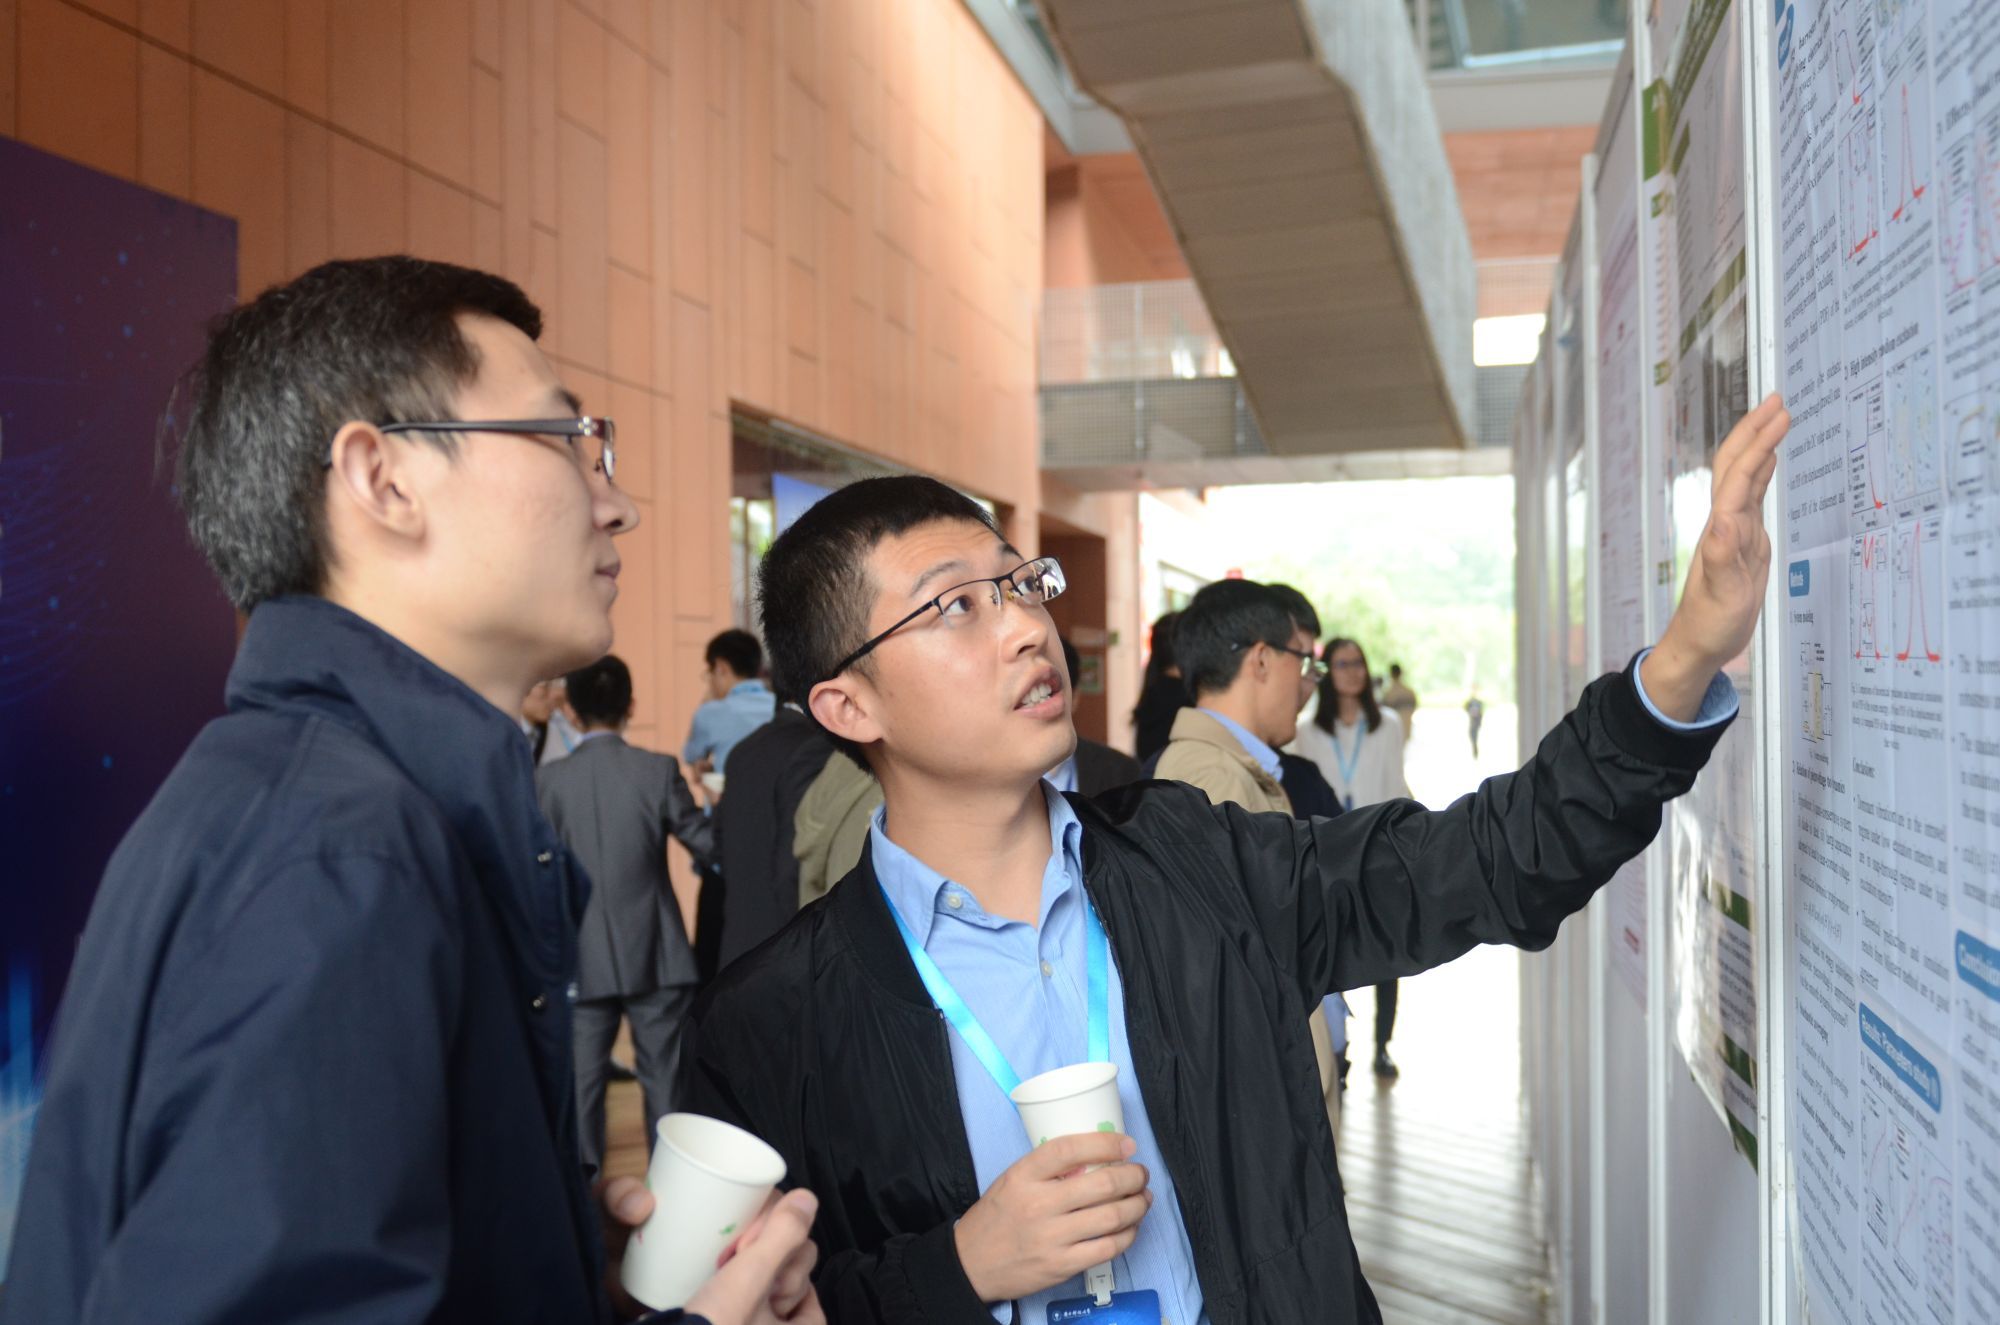 1st International Conference on Vibration & Energy Harvesting Held at SUSTech